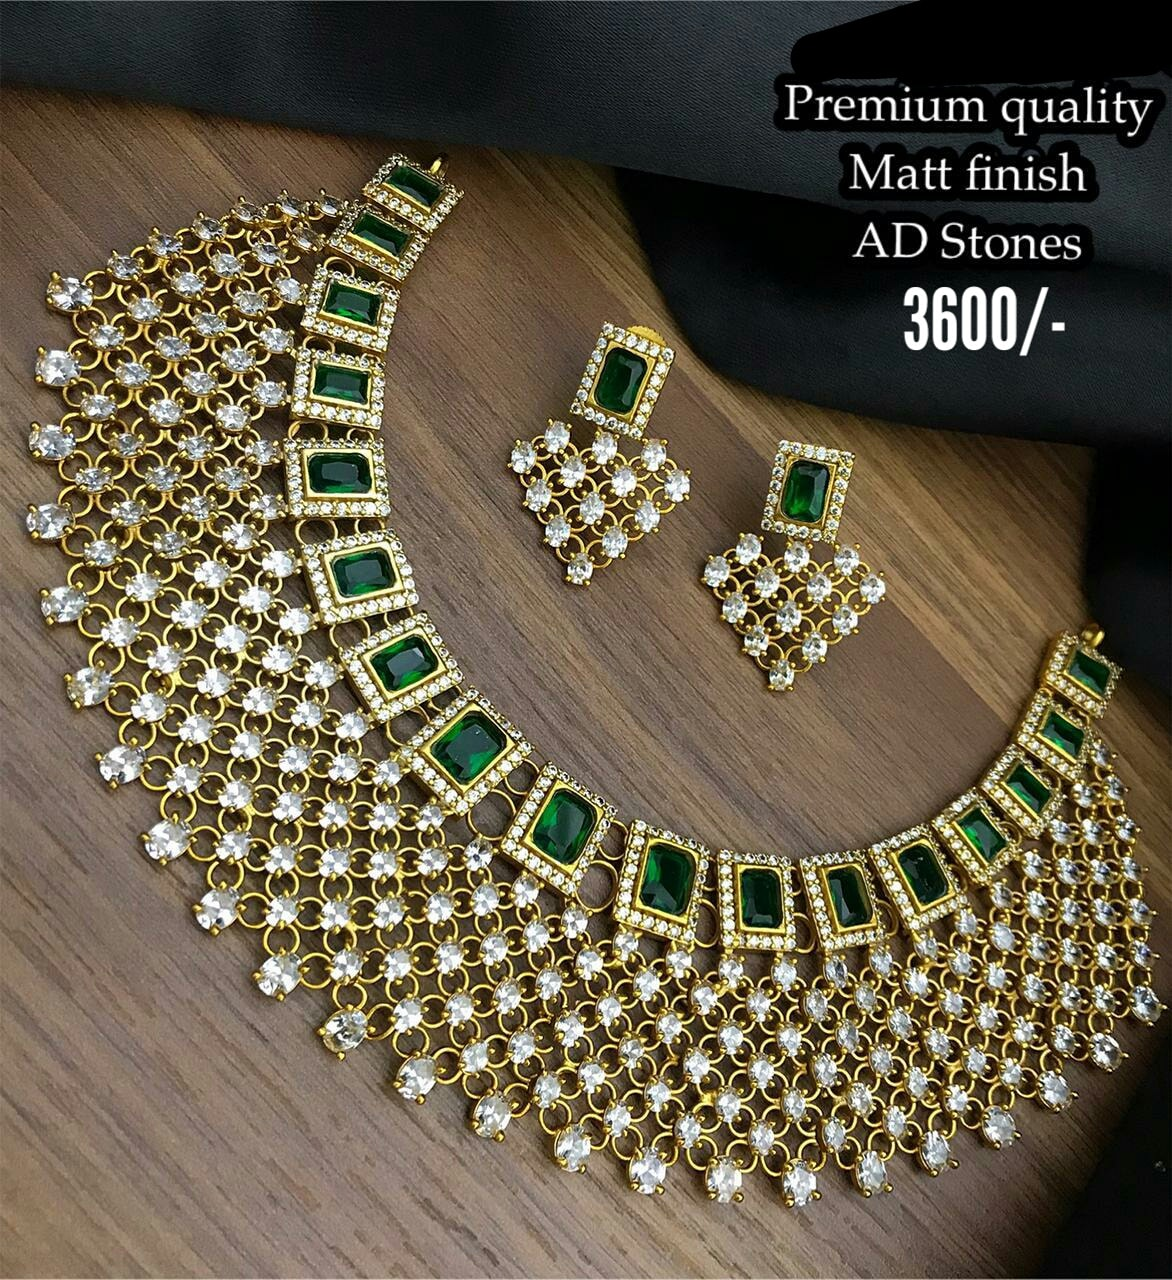 Stunning one gram gold necklace or choker studded with emerald and white color AD stones. Price : 3600/- one gram necklaces with price one gram gold jewellery parakkat 1 gram gold choker necklace sets with price